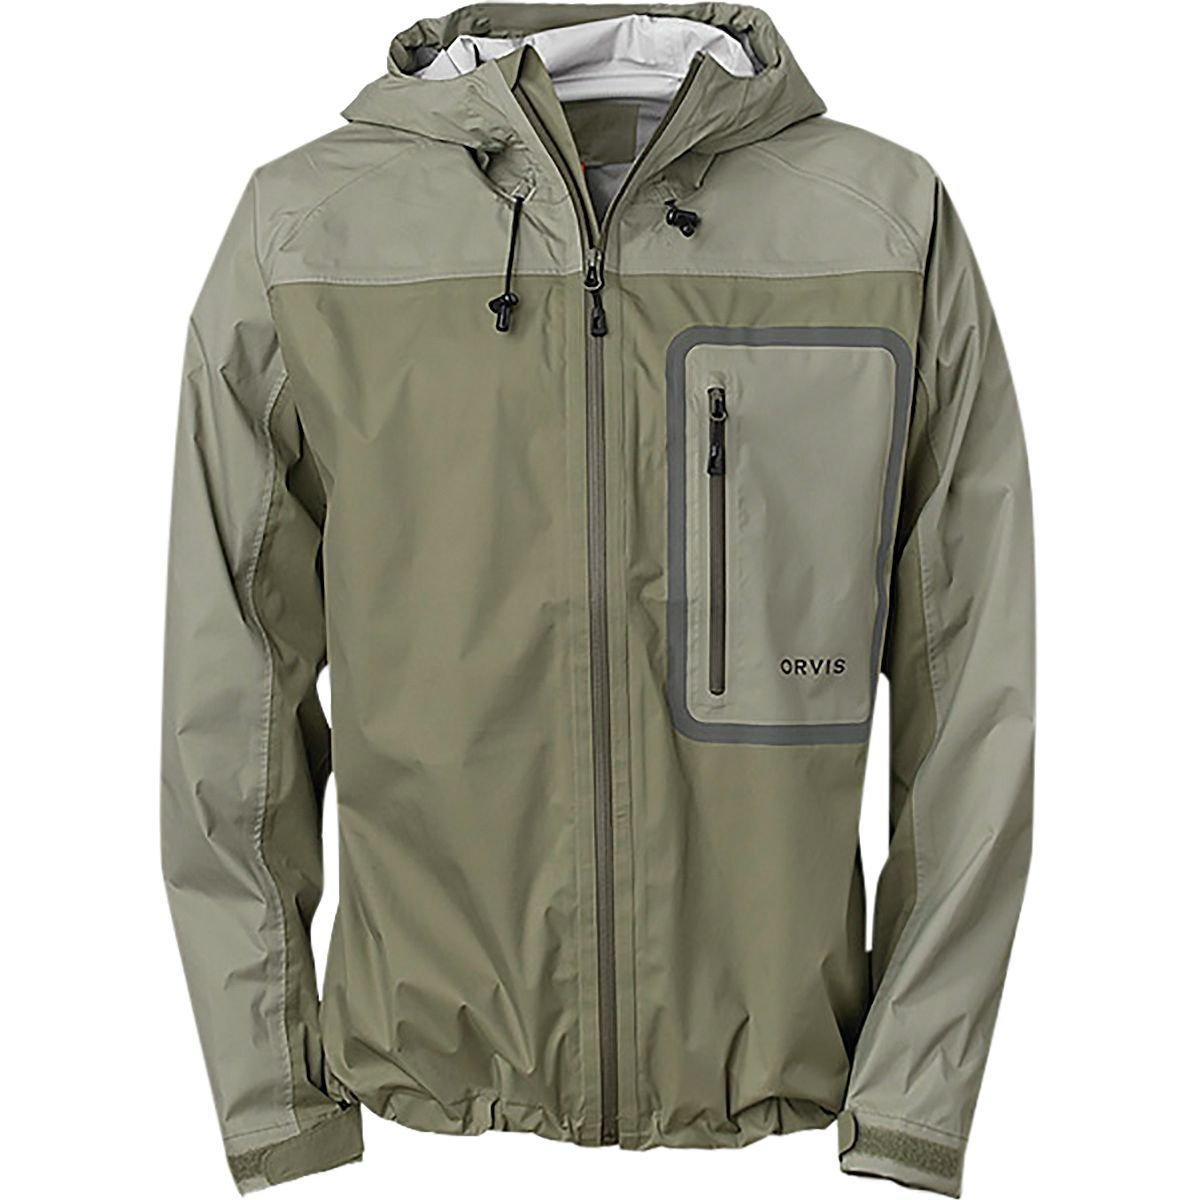 【爆売りセール開催中!】 オービスEncounter Jacket – Men 's Multi B06Y46CXQX XL|Sage Multi – Sage B06Y46CXQX Multi XL, 静岡県:84543c1c --- ballyshannonshow.com